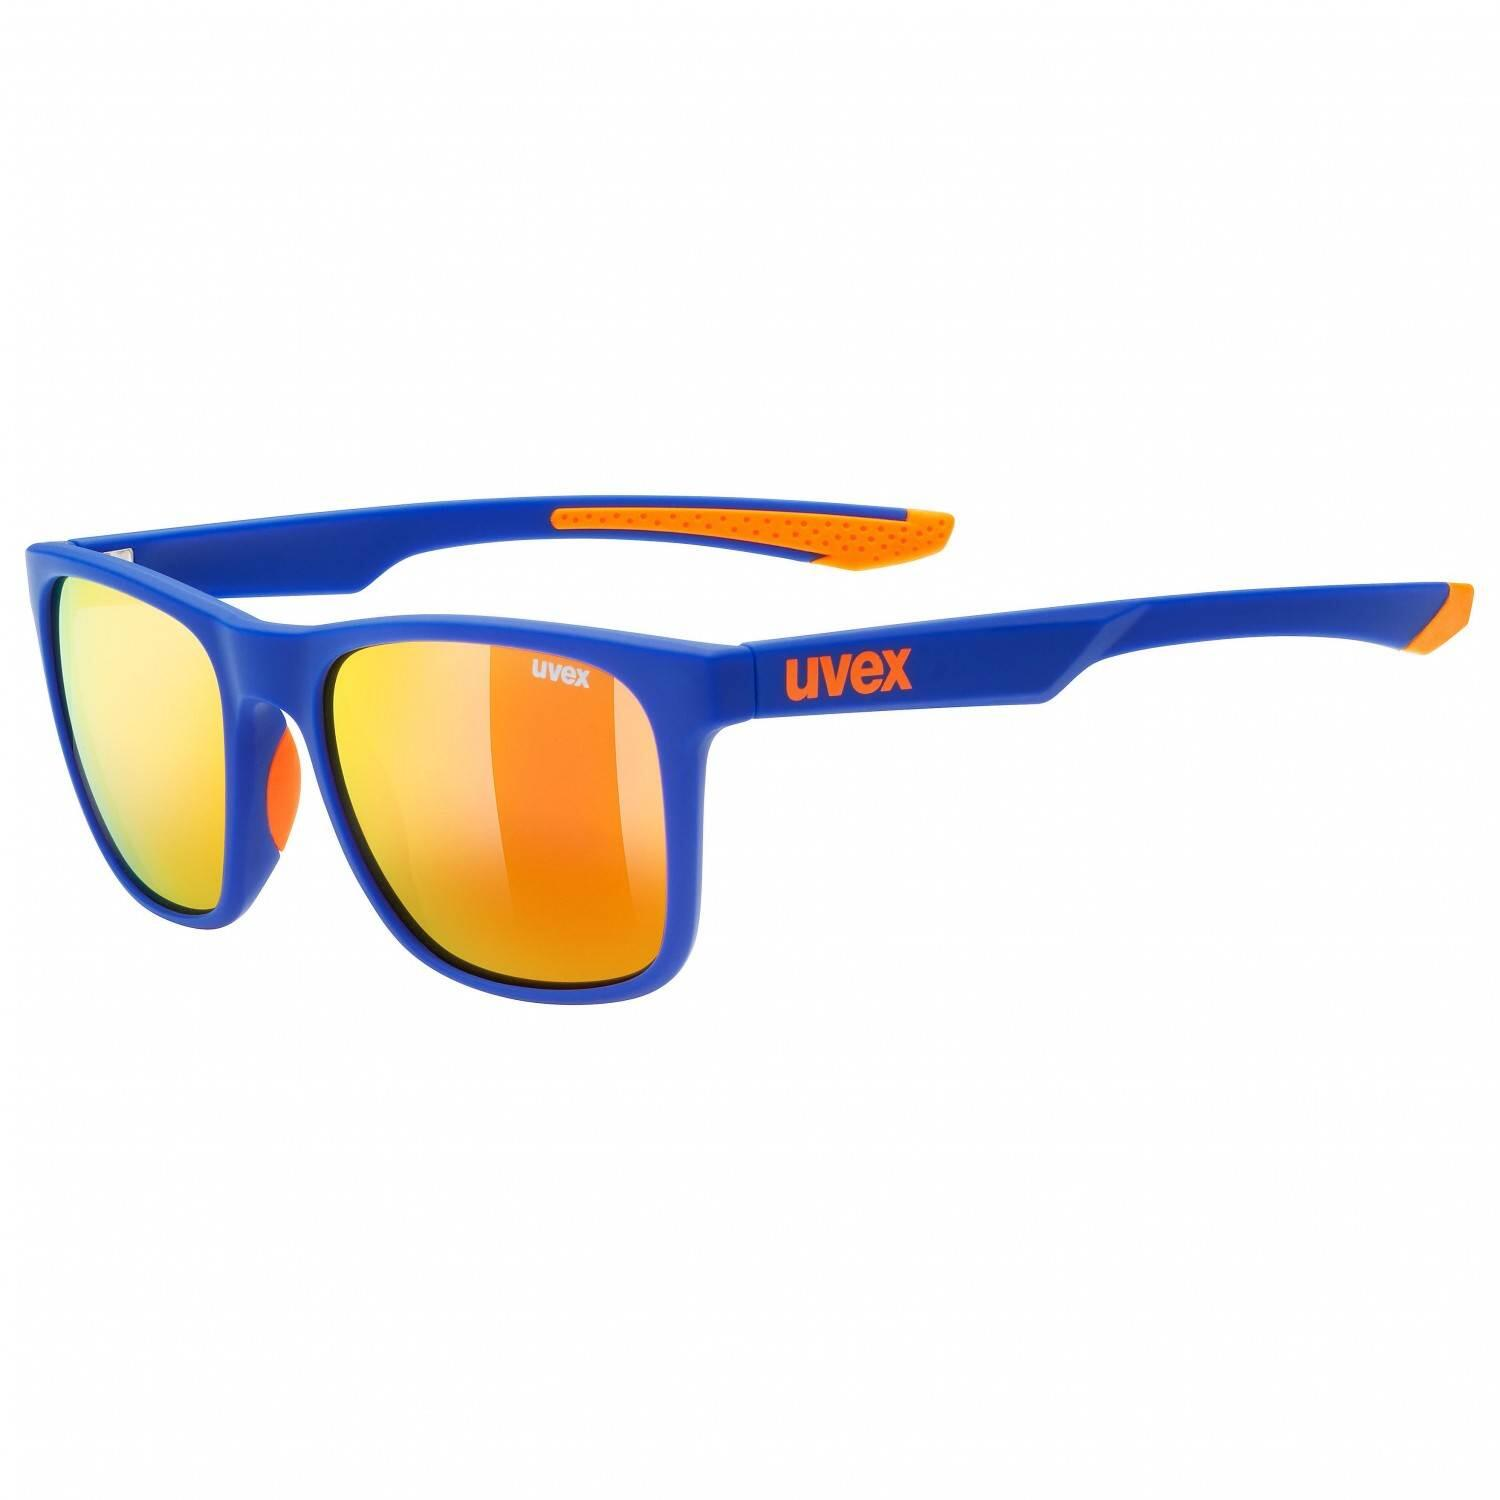 uvex-lgl-42-sonnenbrille-farbe-4316-blue-orange-mat-mirror-red-s3-